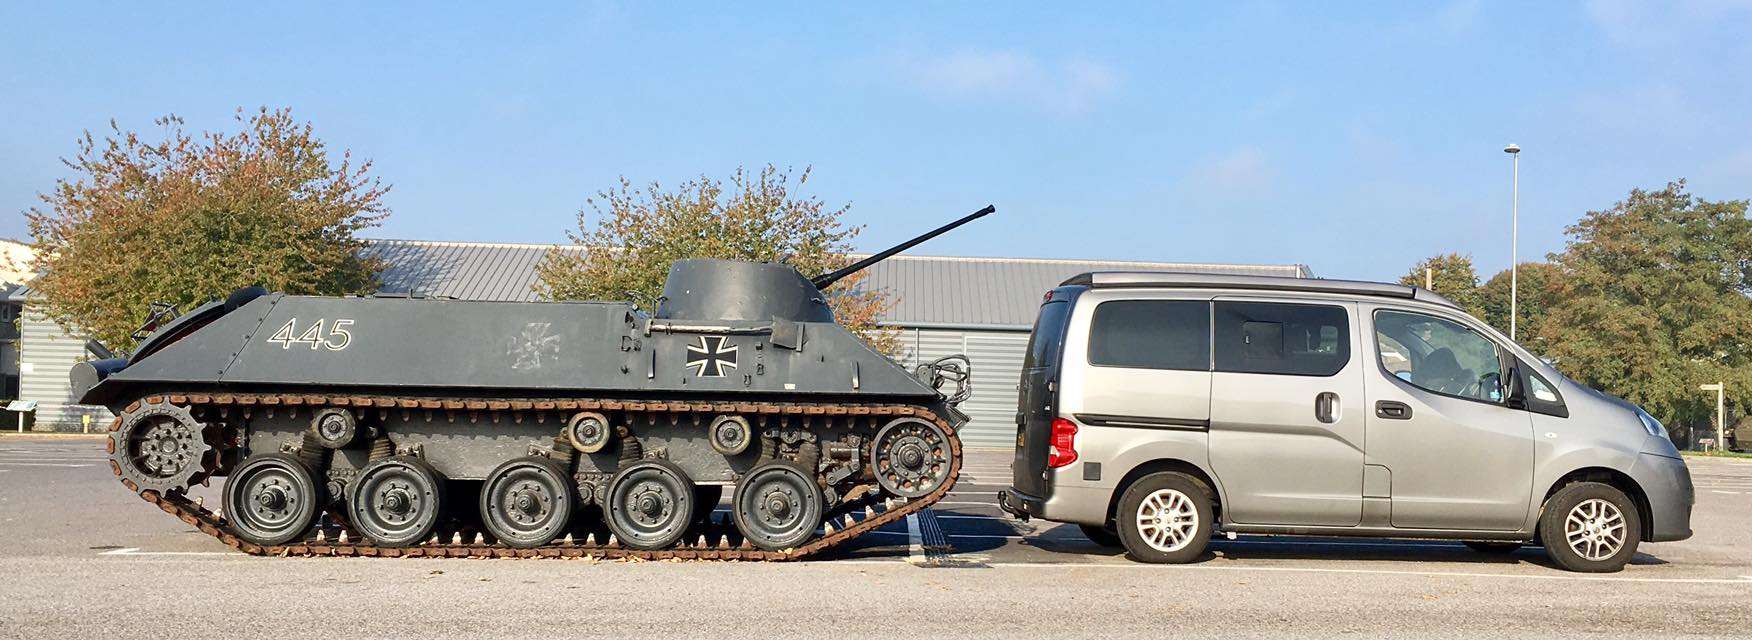 Part 3 Bovington Tank Museum NV200 camper3.jpg